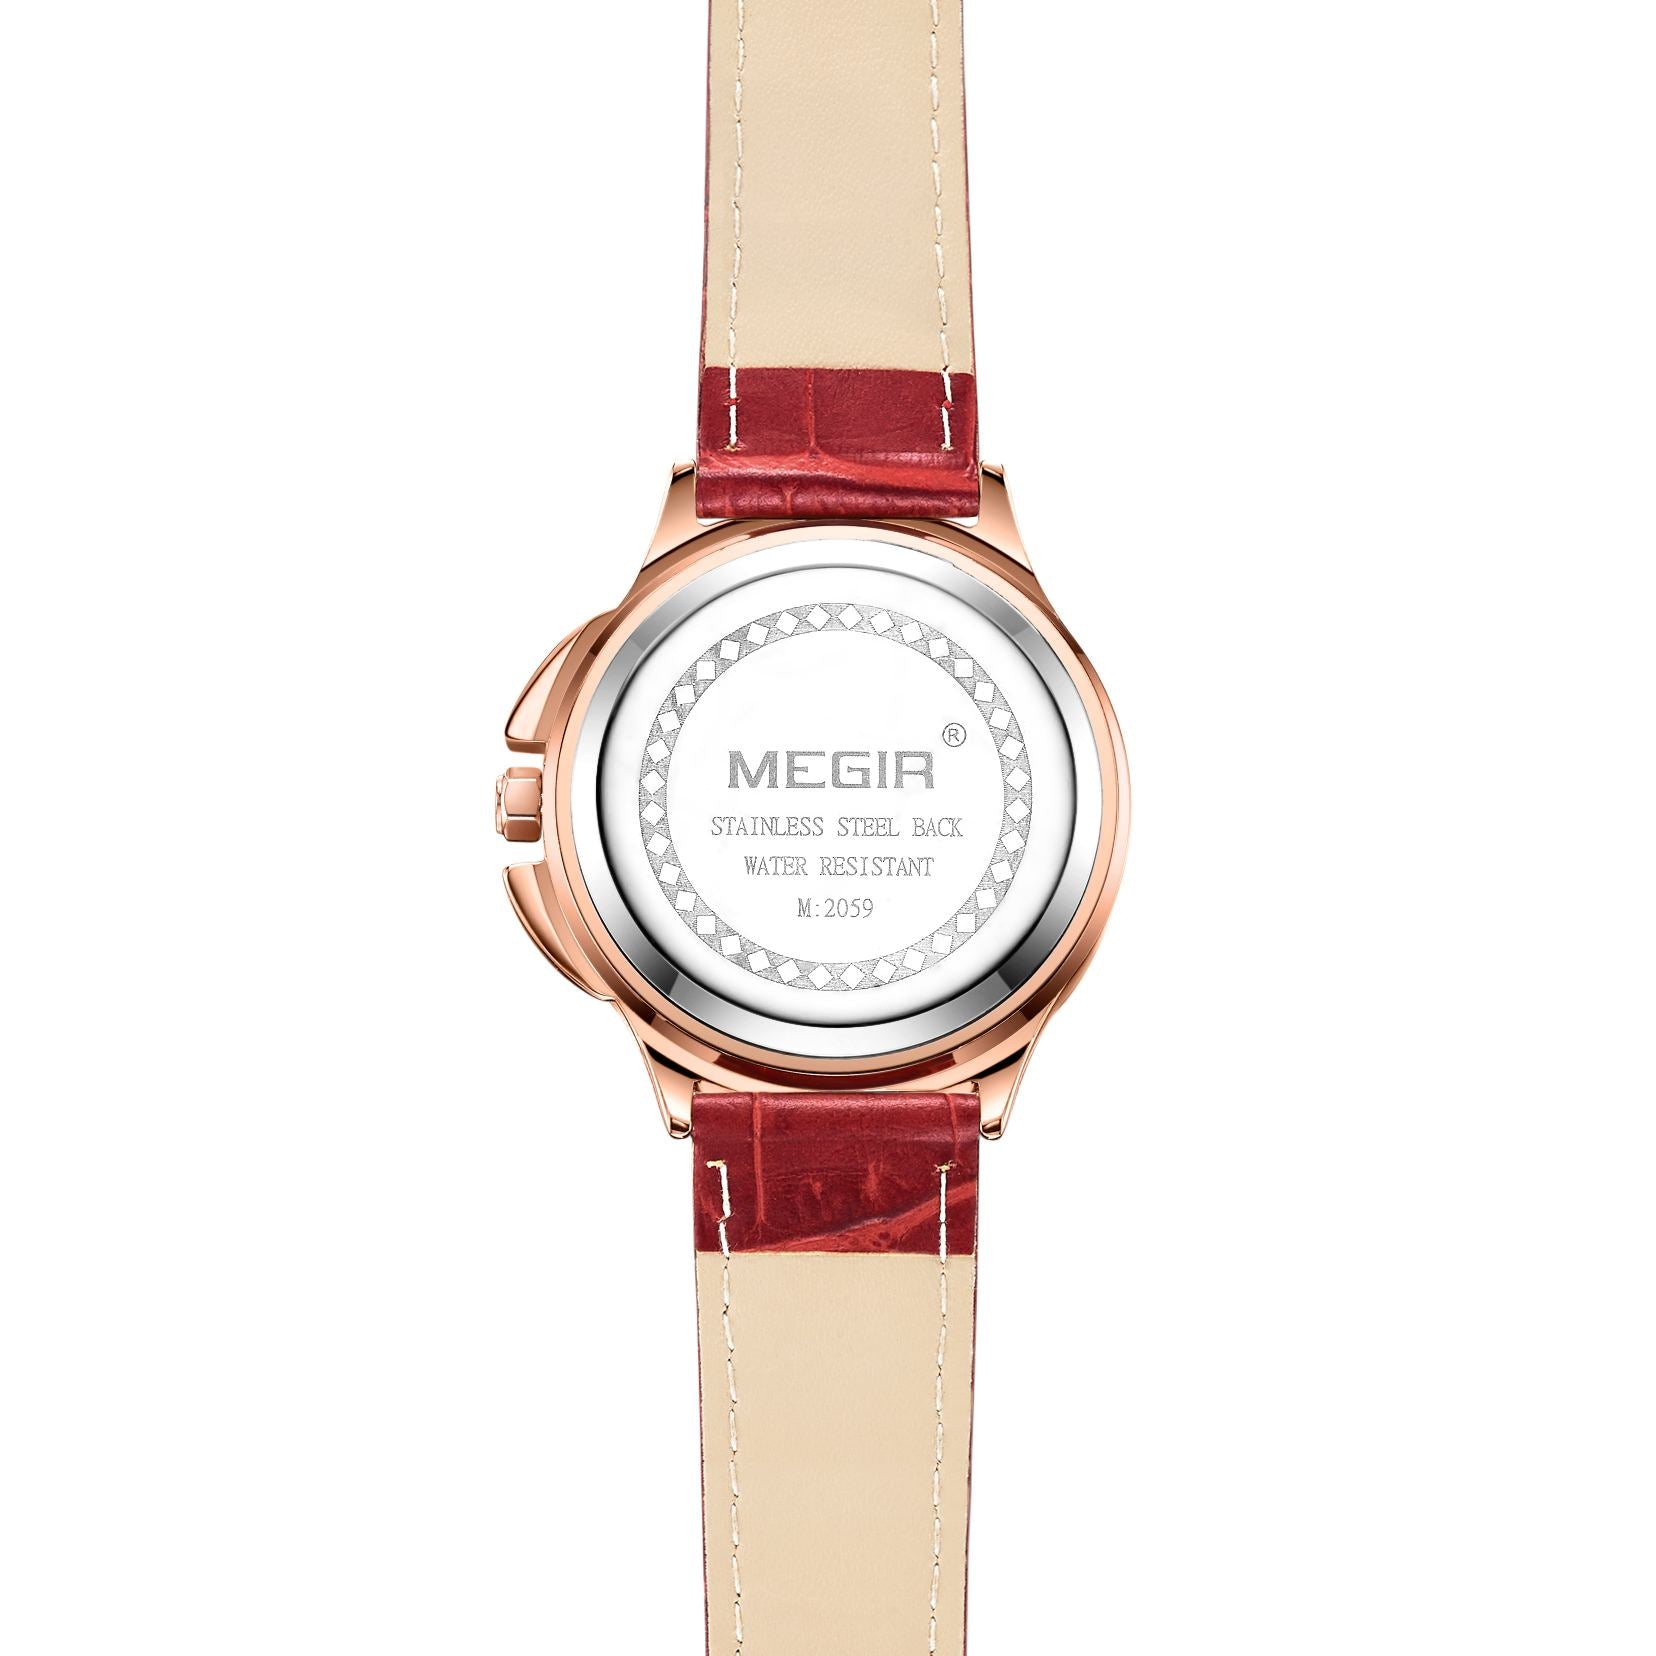 MEGIR women's luxury watches 2059 - MEGIR